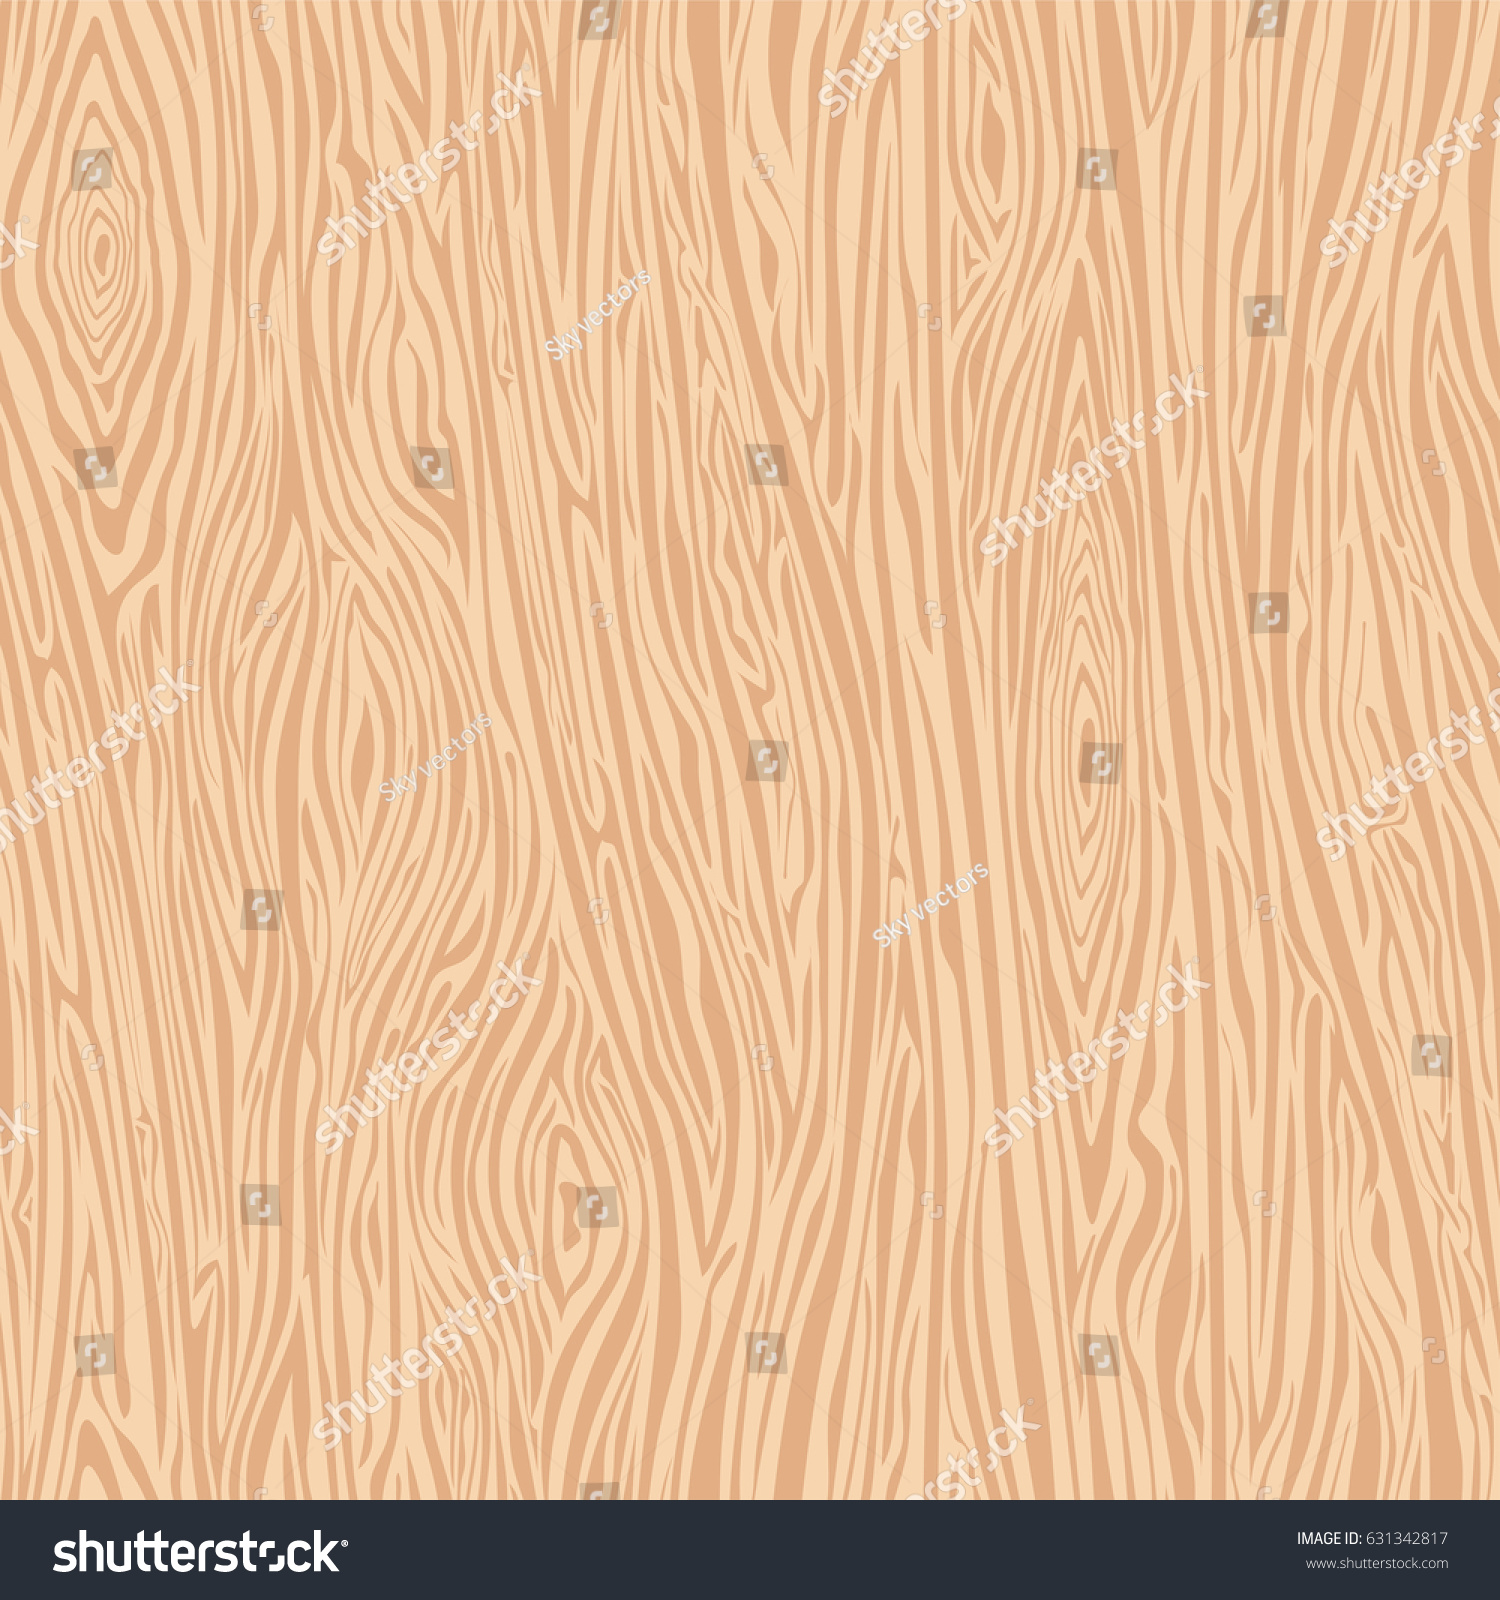 Wooden table background pattern - Seamless Painted Wood Texture Woodgrain Background For Table Floor Wall Boards